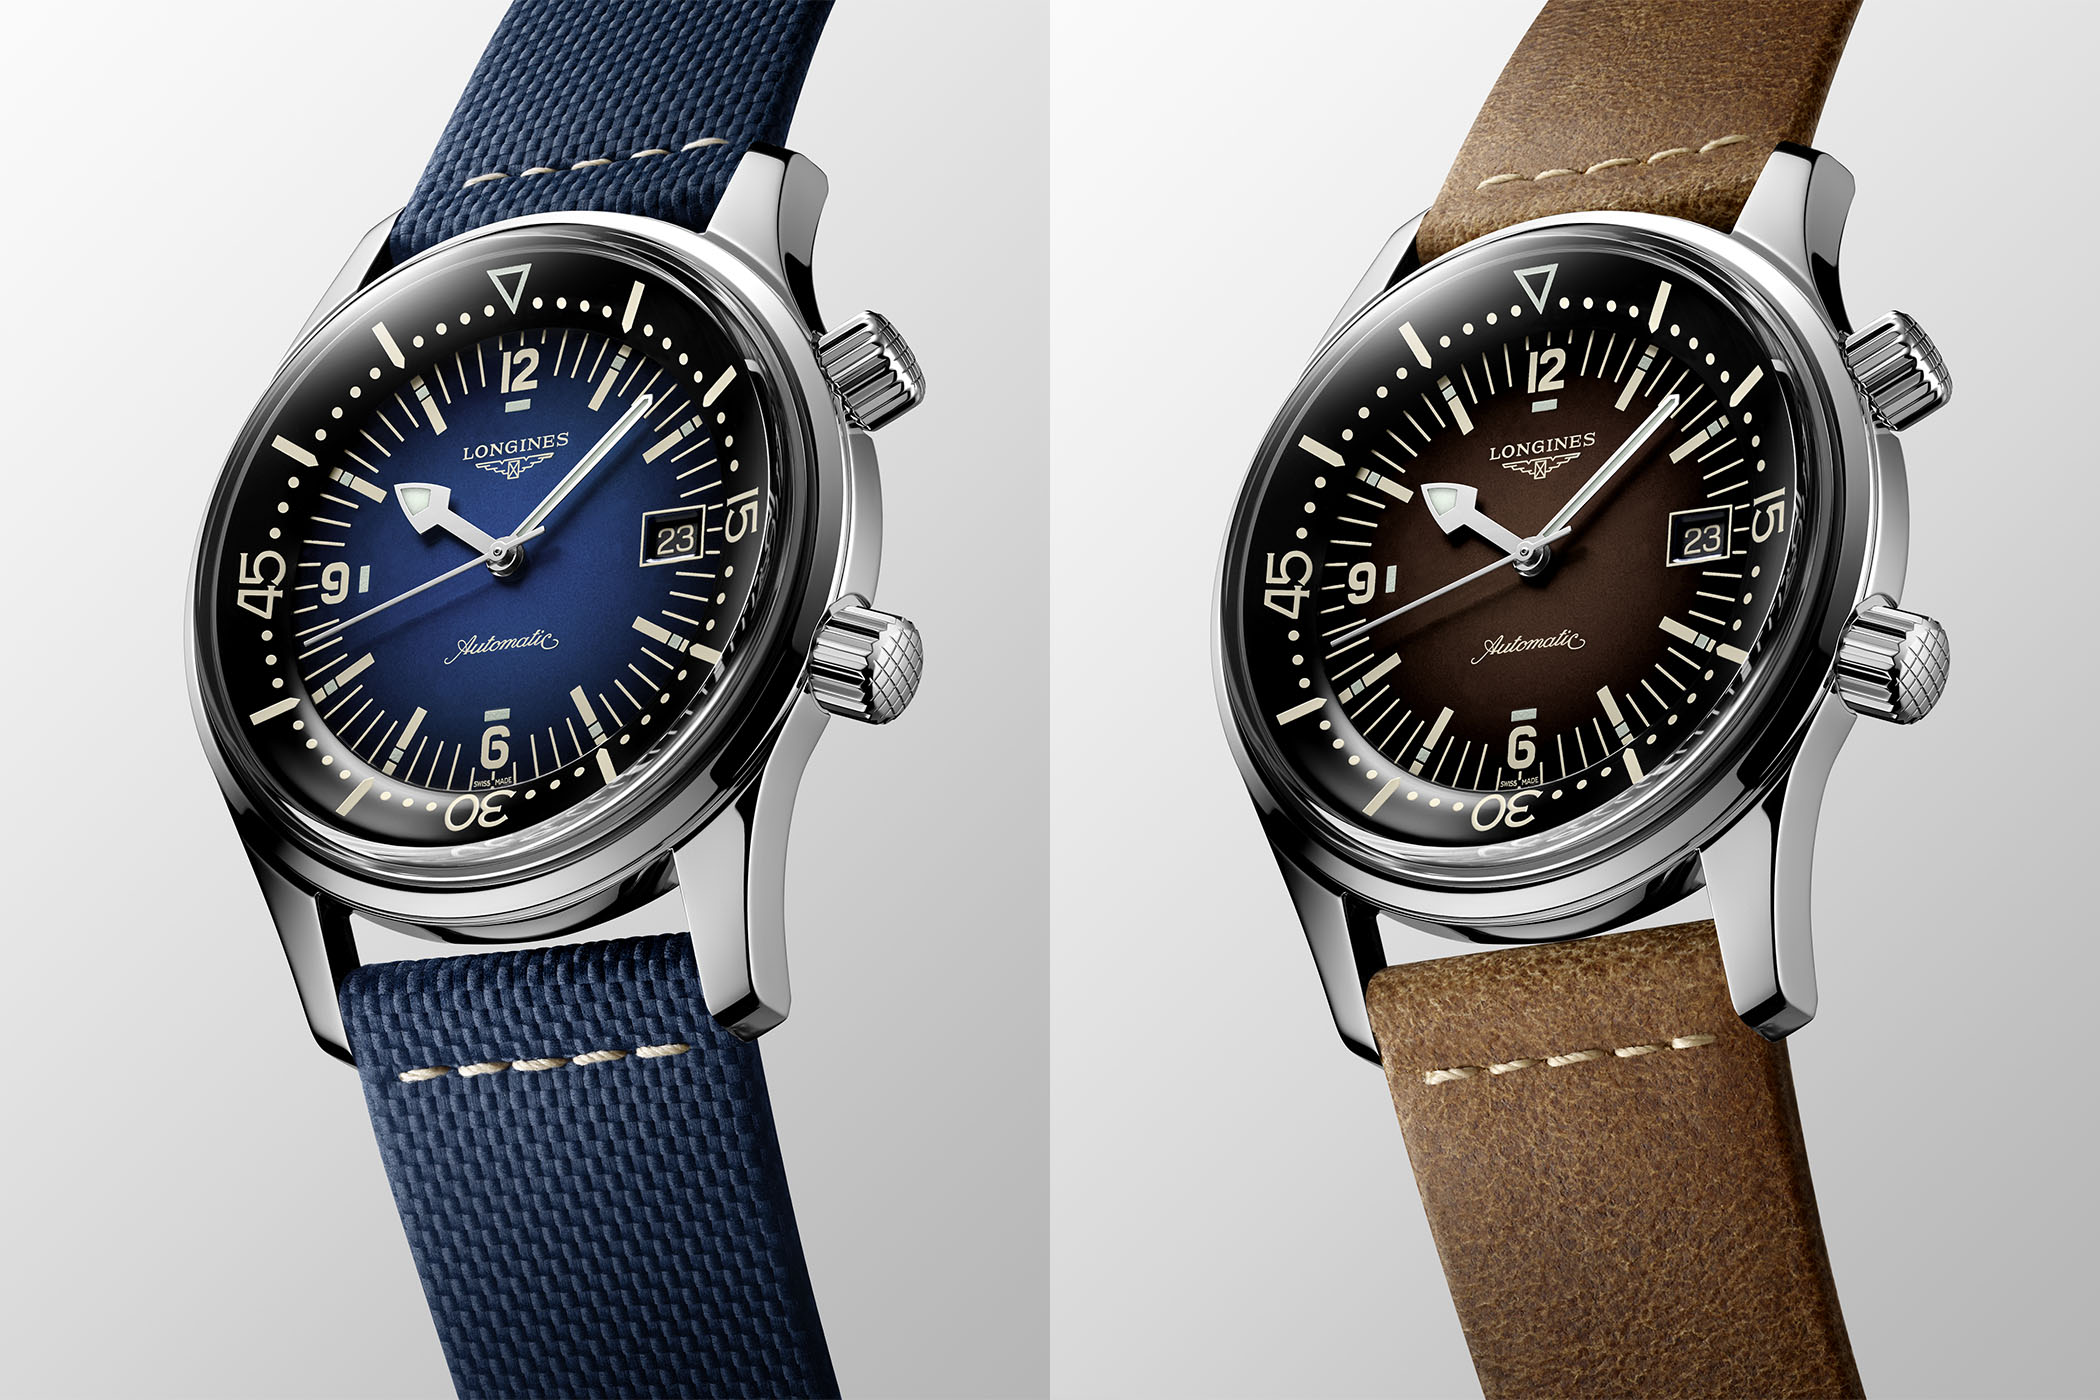 2021 Longines Legend Diver Gradient blue or gradient brown dial